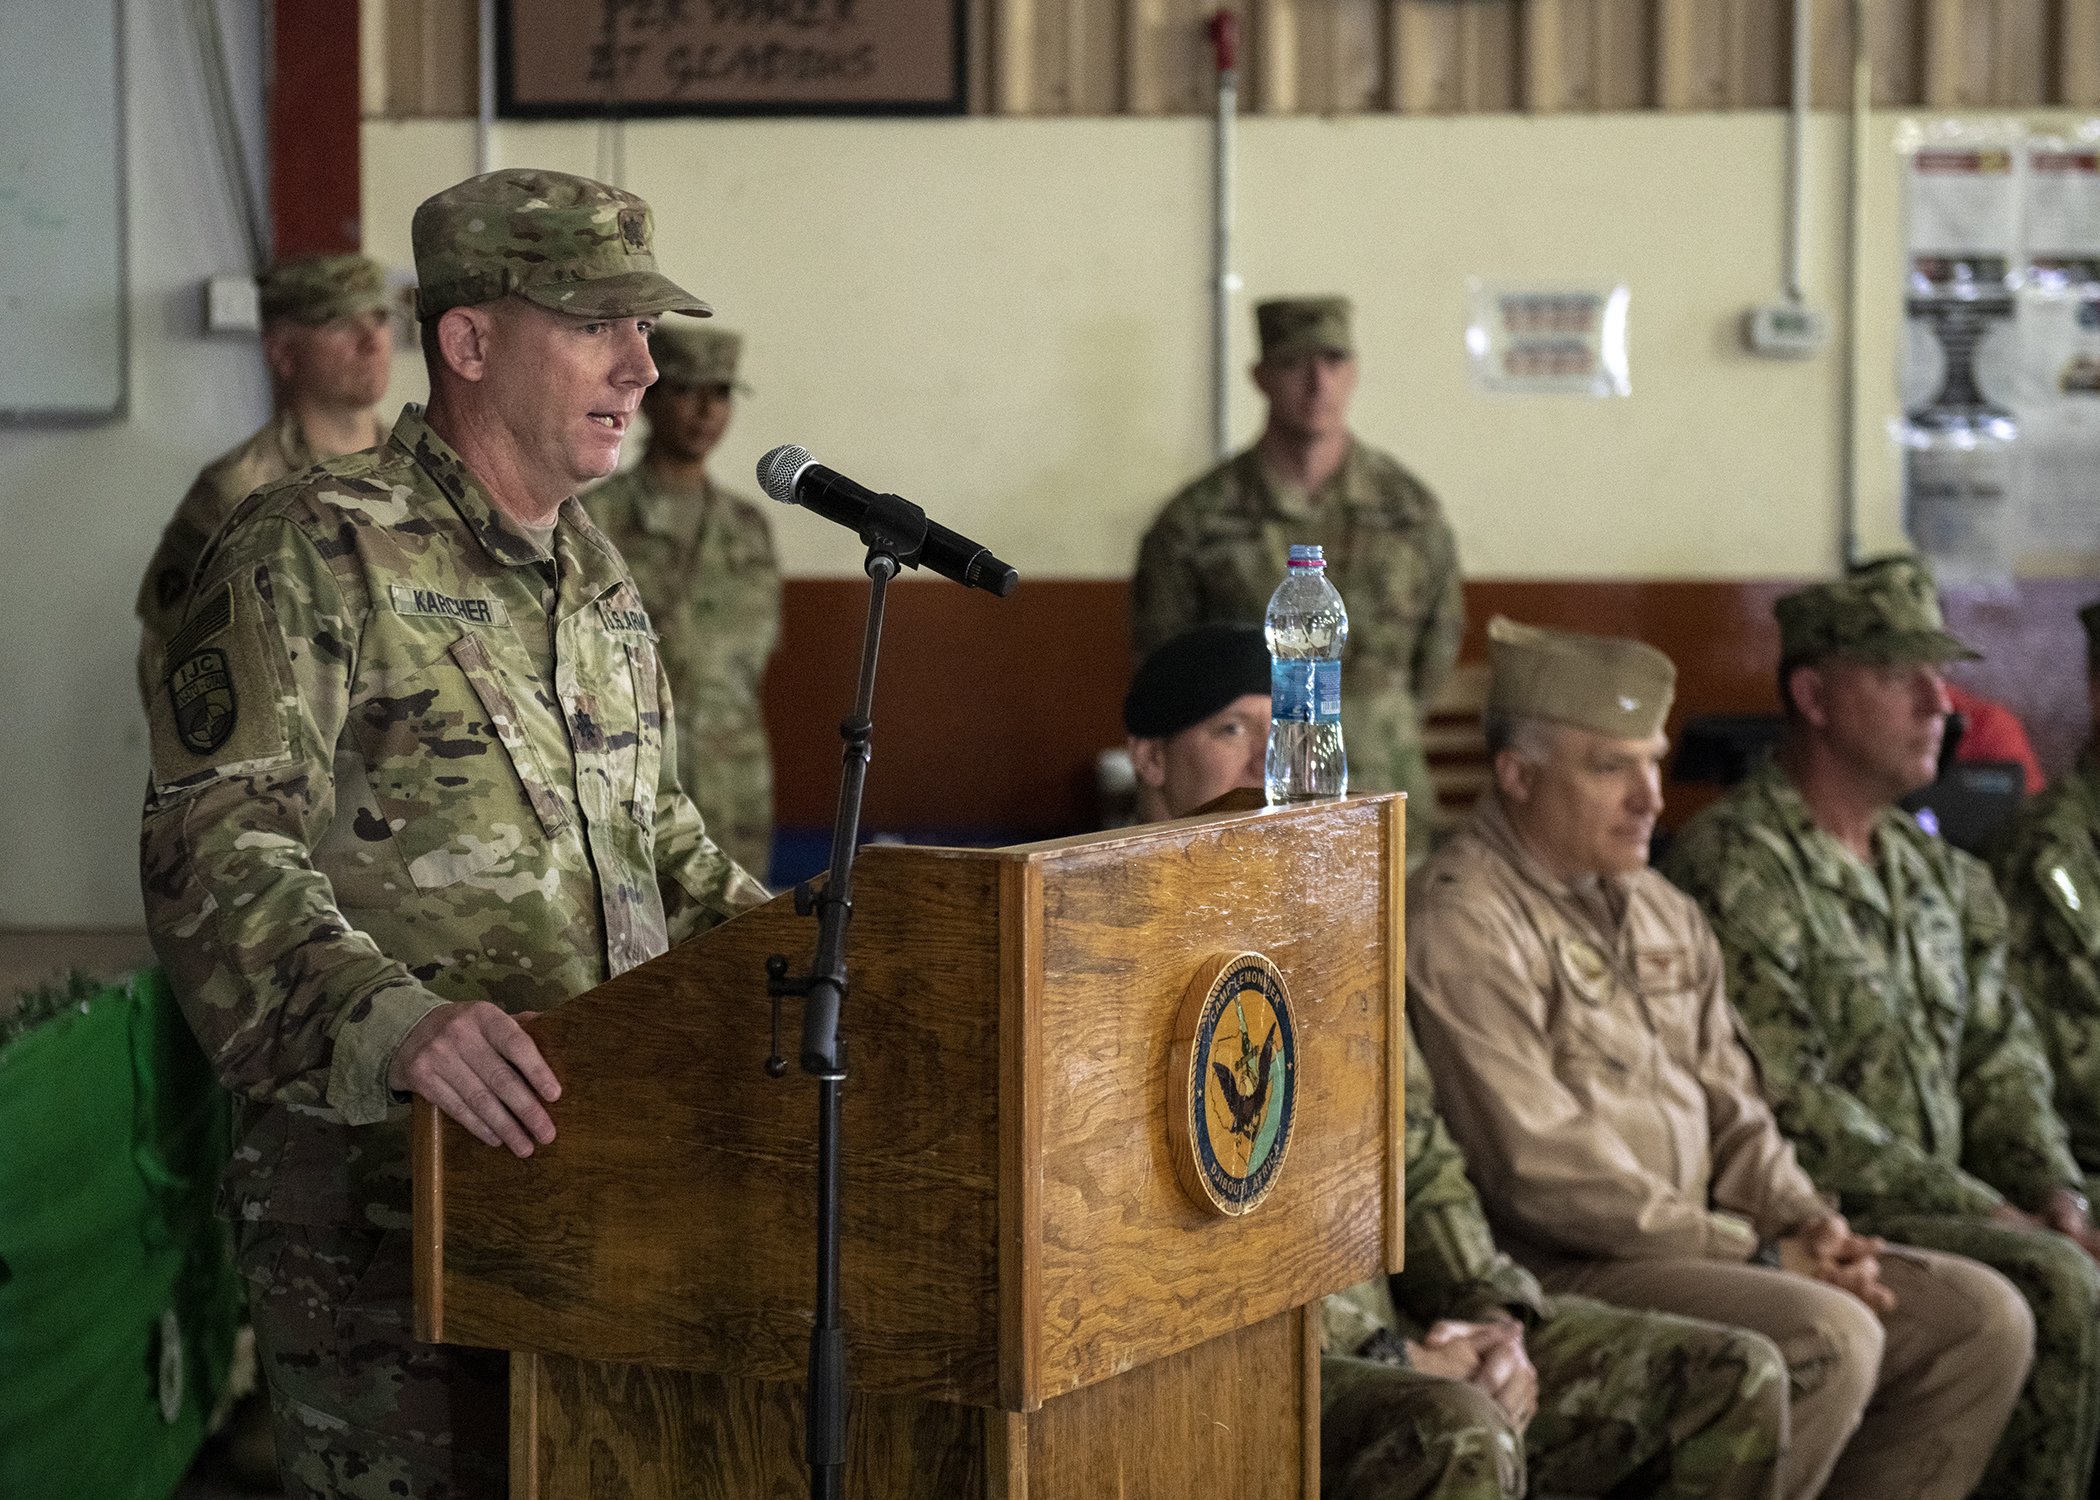 U.S. Army Lt. Col. Richard Karcher, commander, 2nd Battalion, 113th Infantry Regiment, Task Force Warrior, New Jersey National Guard, gives a speech while assuming his unit's mission at Combined Joint Task Force-Horn of Africa (CJTF-HOA) to 2nd Battalion, 113th Infantry Regiment, Task Force Warrior, New Jersey National Guard, during a transfer of authority ceremony at Camp Lemonnier, Djibouti, March 15, 2019. Task Force Warrior assumed responsibility as the security forces battalion for CJTF-HOA and will also contribute to international efforts to enhance security and stability in East Africa. (U.S. Air Force Photo by Tech. Sgt. Shawn Nickel)